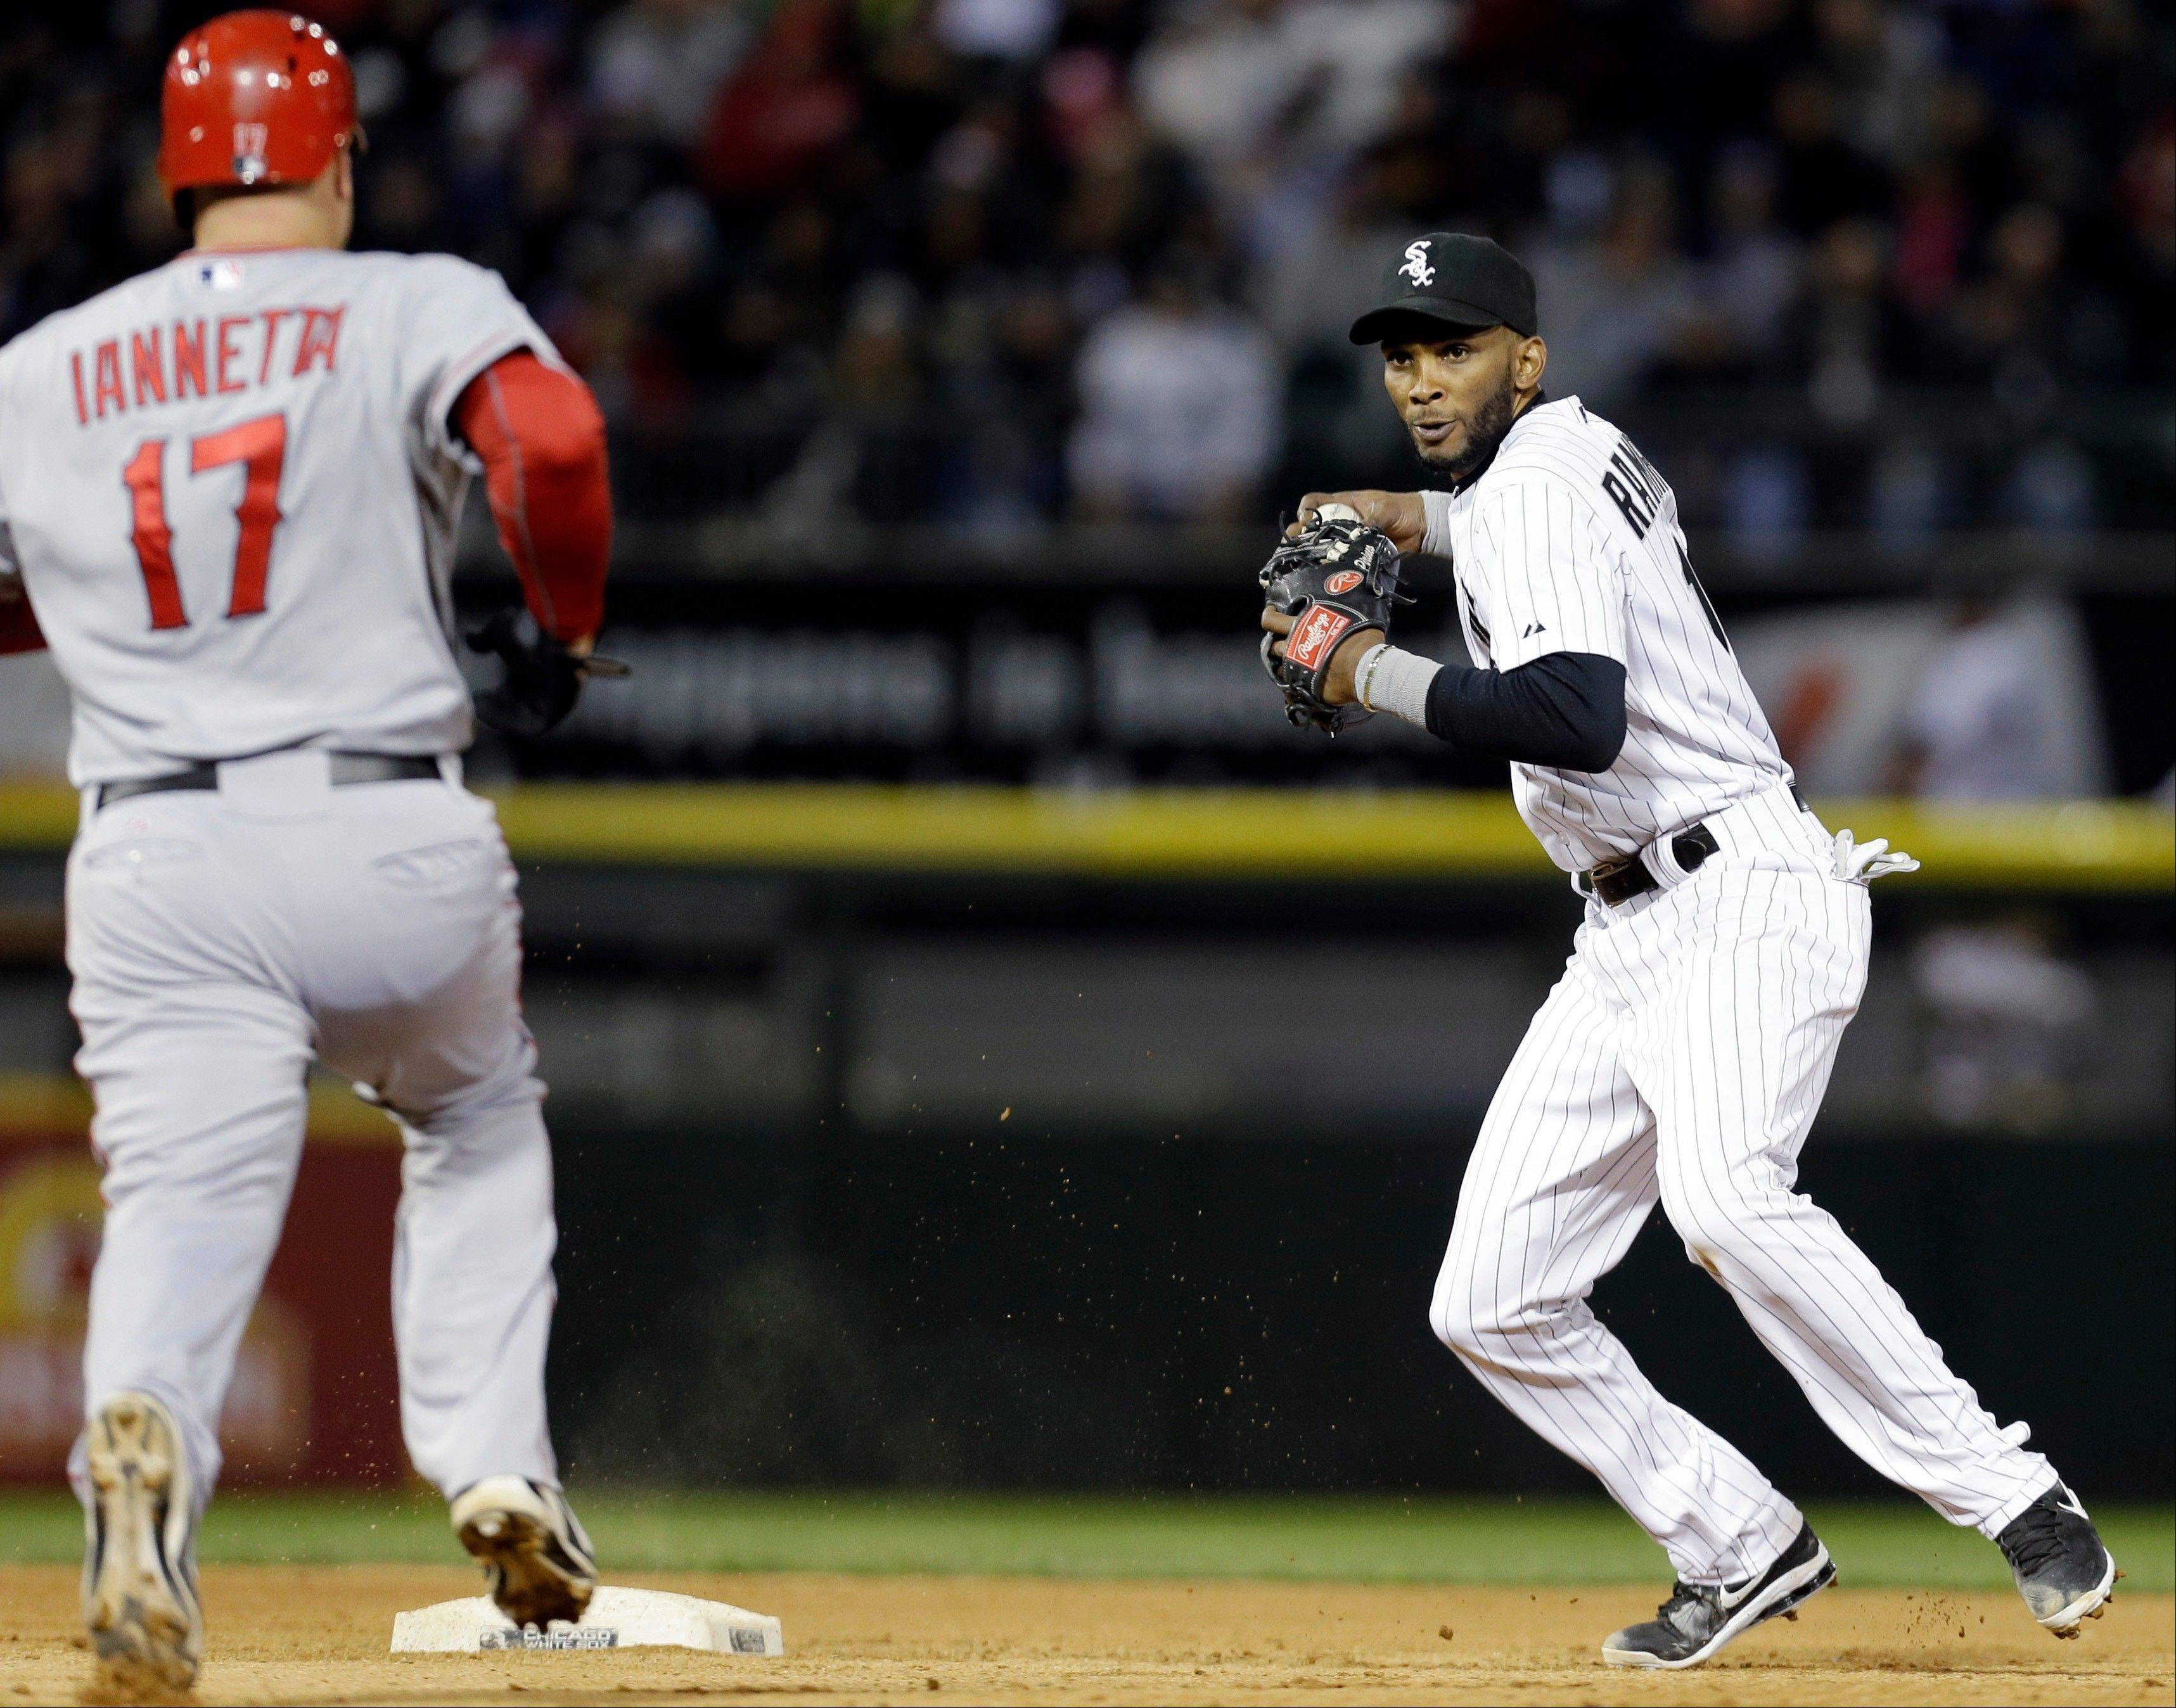 White Sox shortstop Alexei Ramirez looks to throw after forcing out the Angels' Chris Iannetta in Saturday night's game. While defense has been an issue for the Sox this season, Chris Rongey says hitting has been the bigger problem.